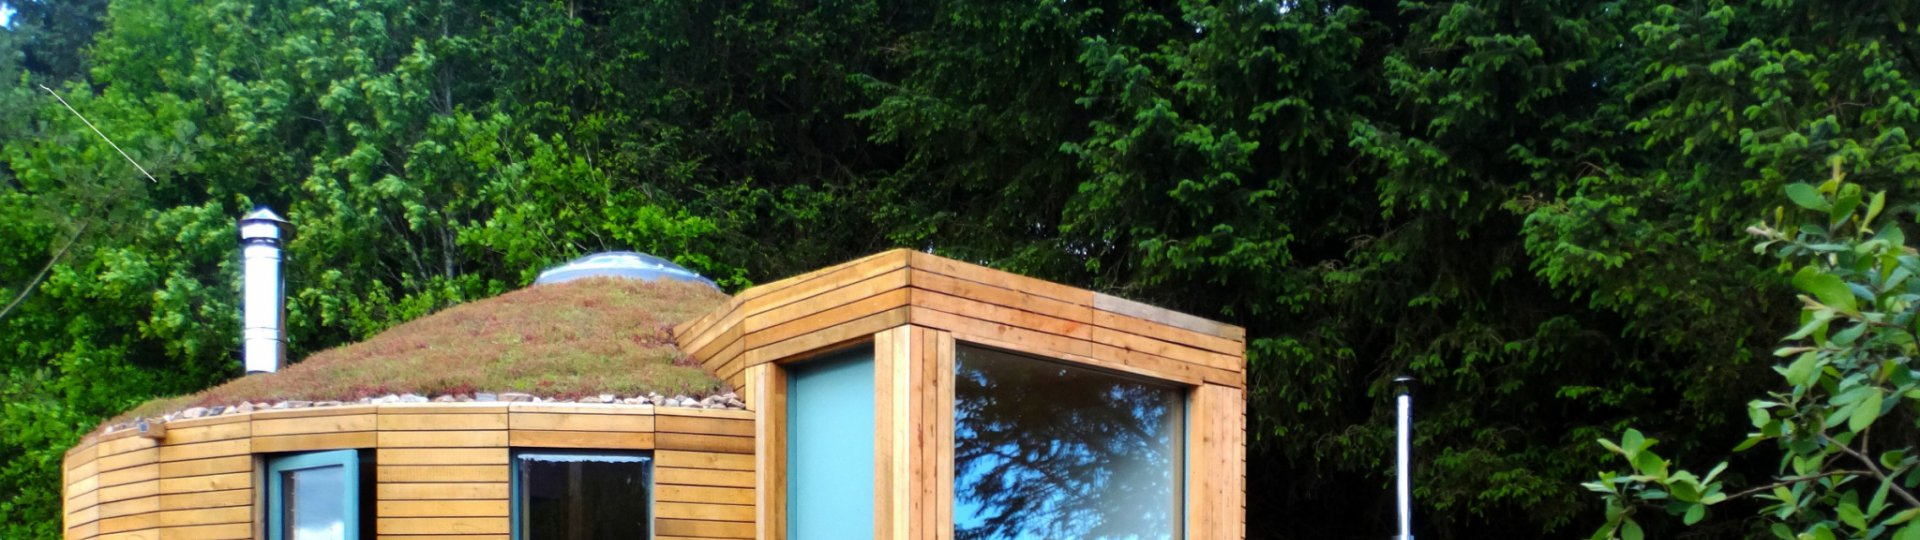 An image showing the exterior of Otter Yurt Lodge at Loch Ken Eco Bothies self catering accommodatio